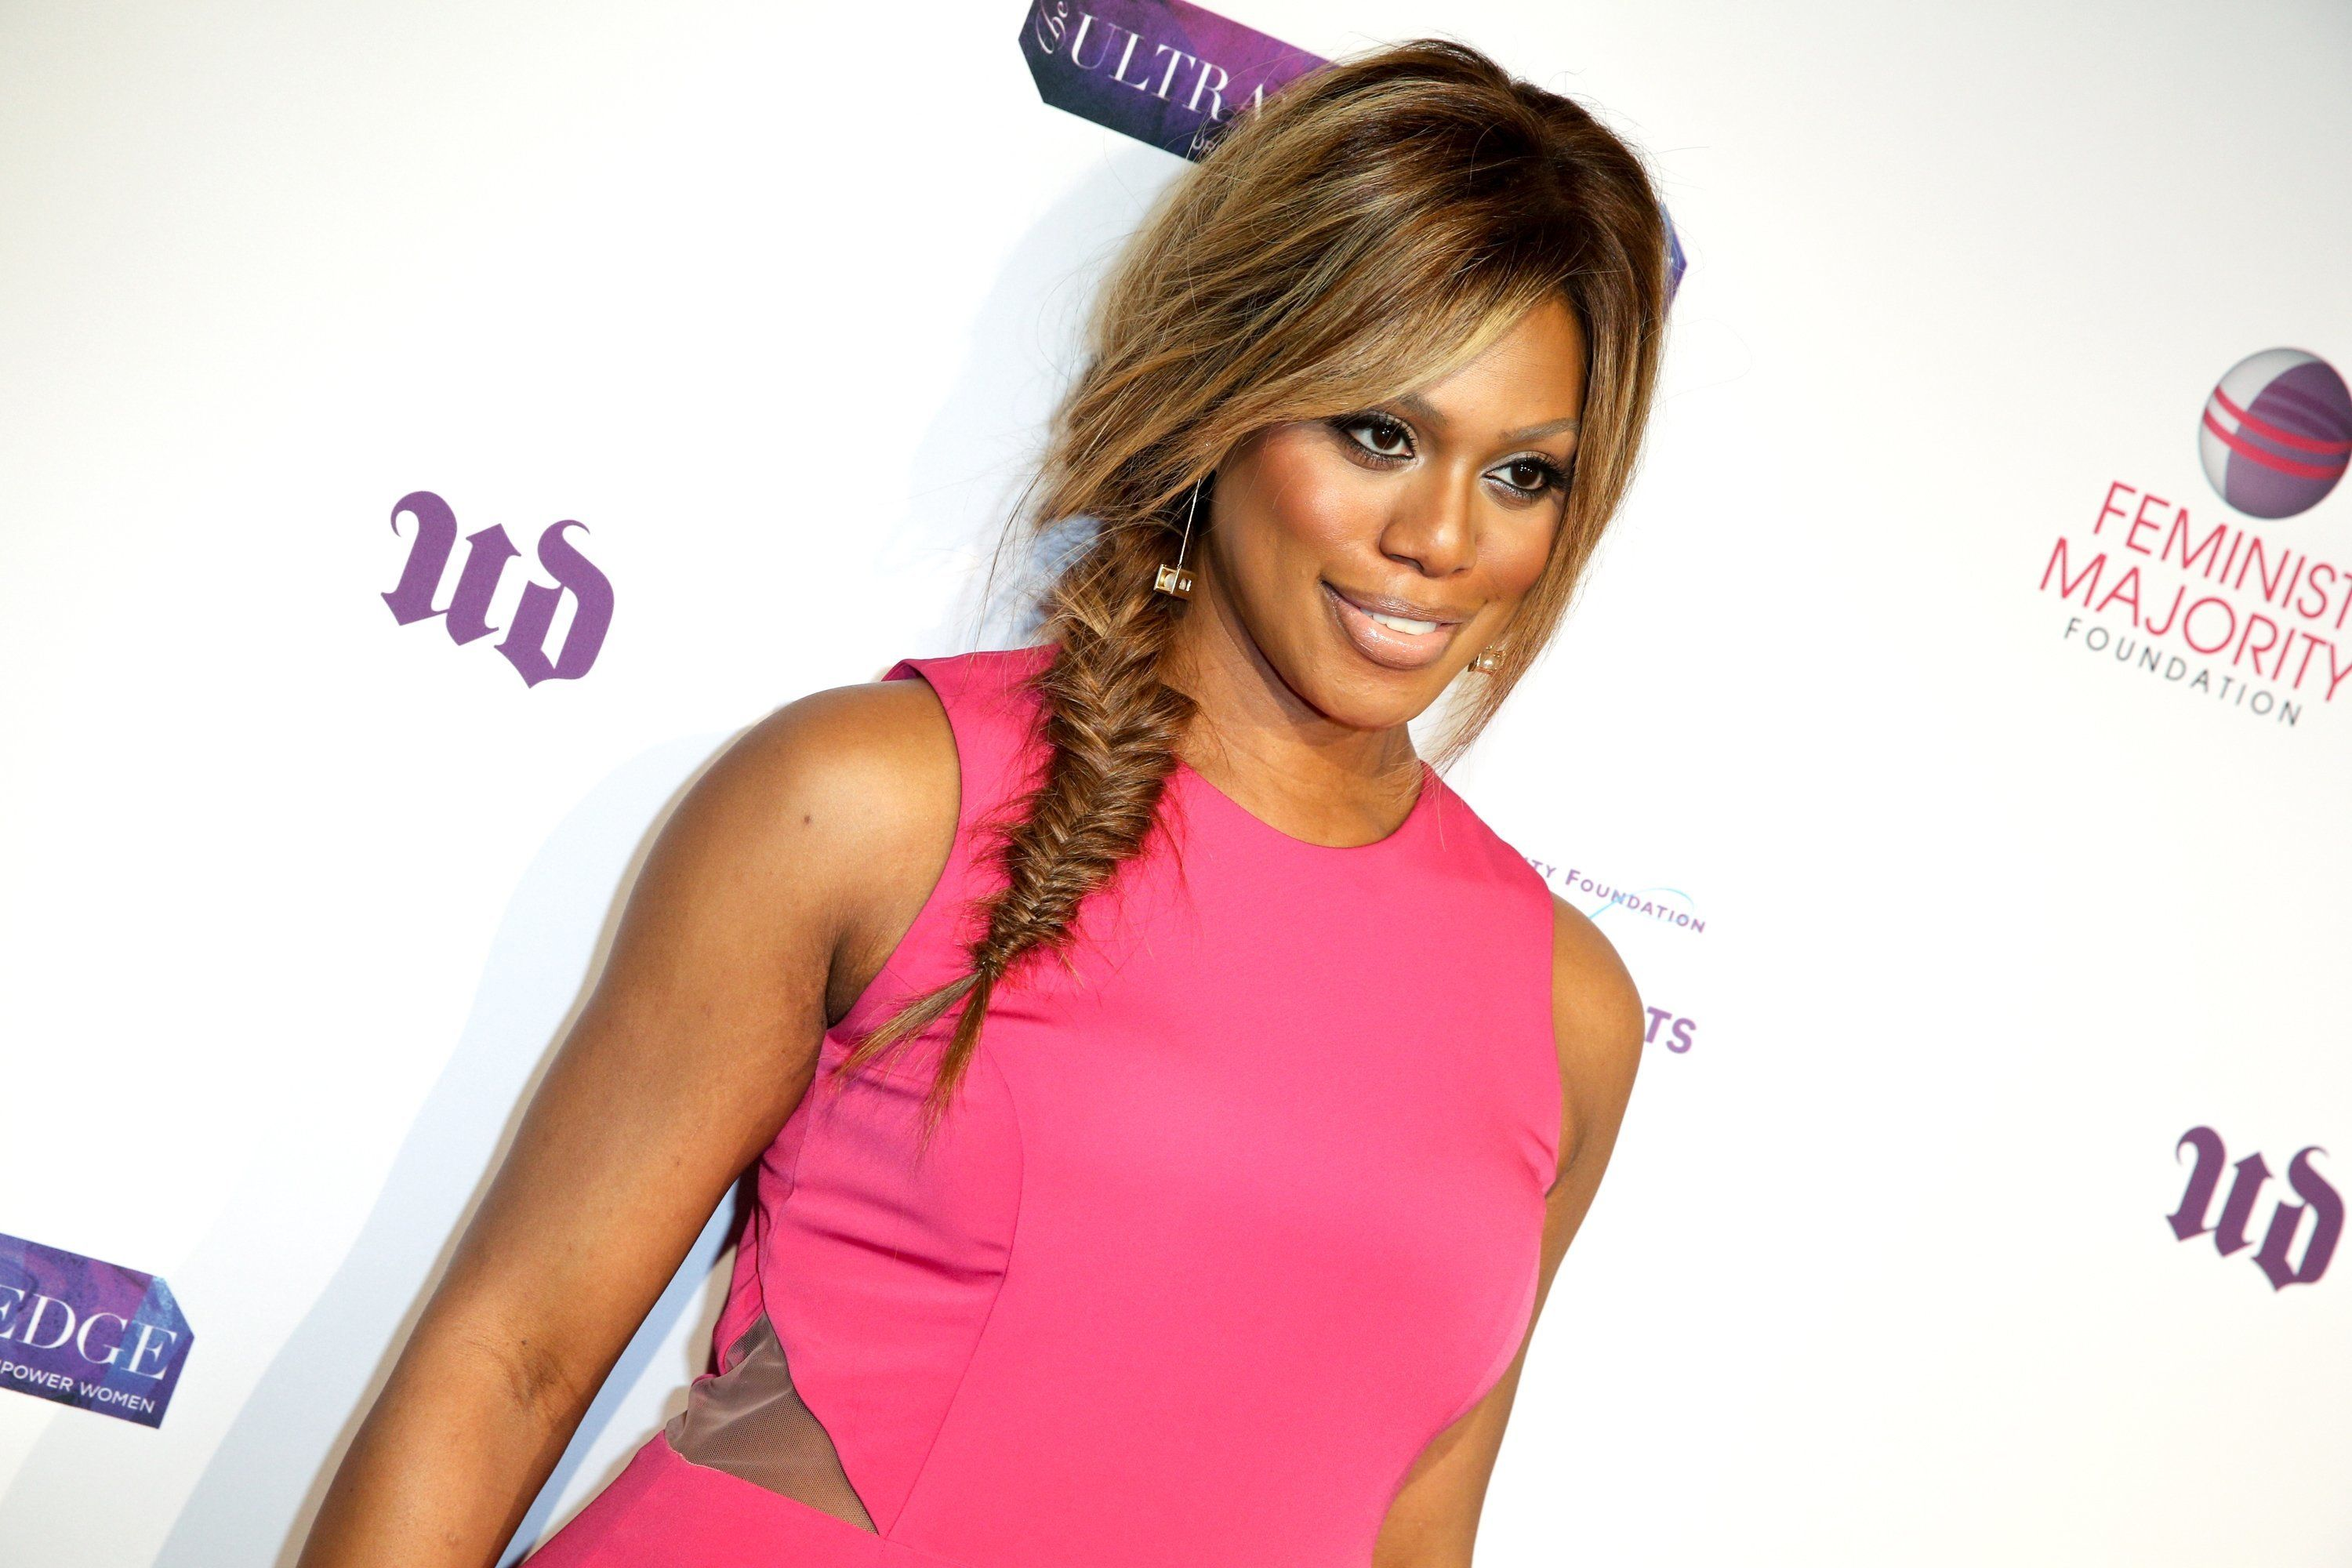 Laverne Cox and Beyonce Collaborating on a New Project